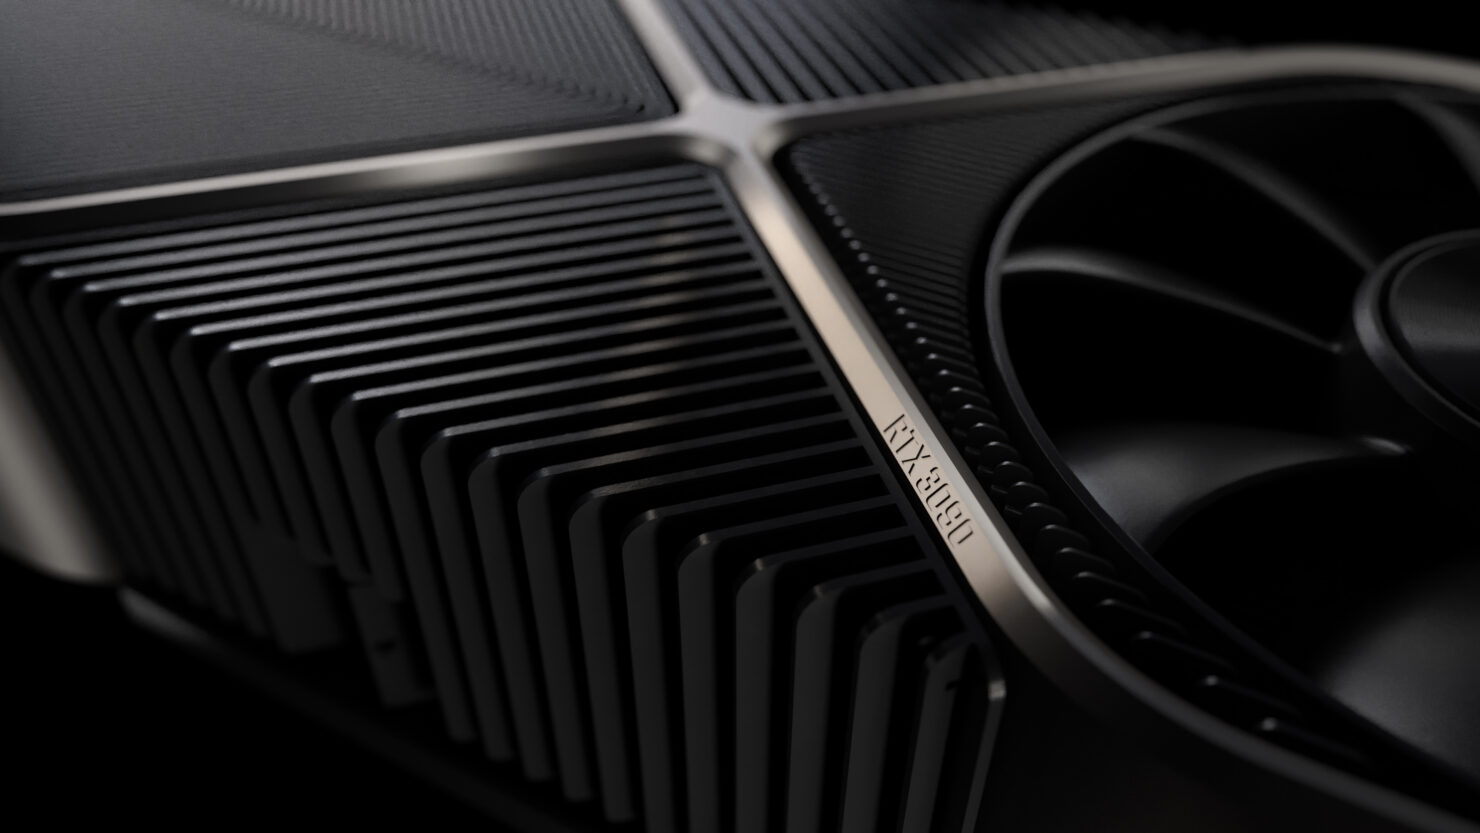 nvidia-geforce-rtx-3090-ultra-enthusiast-graphics-card-benchmarks-leak-outhellip